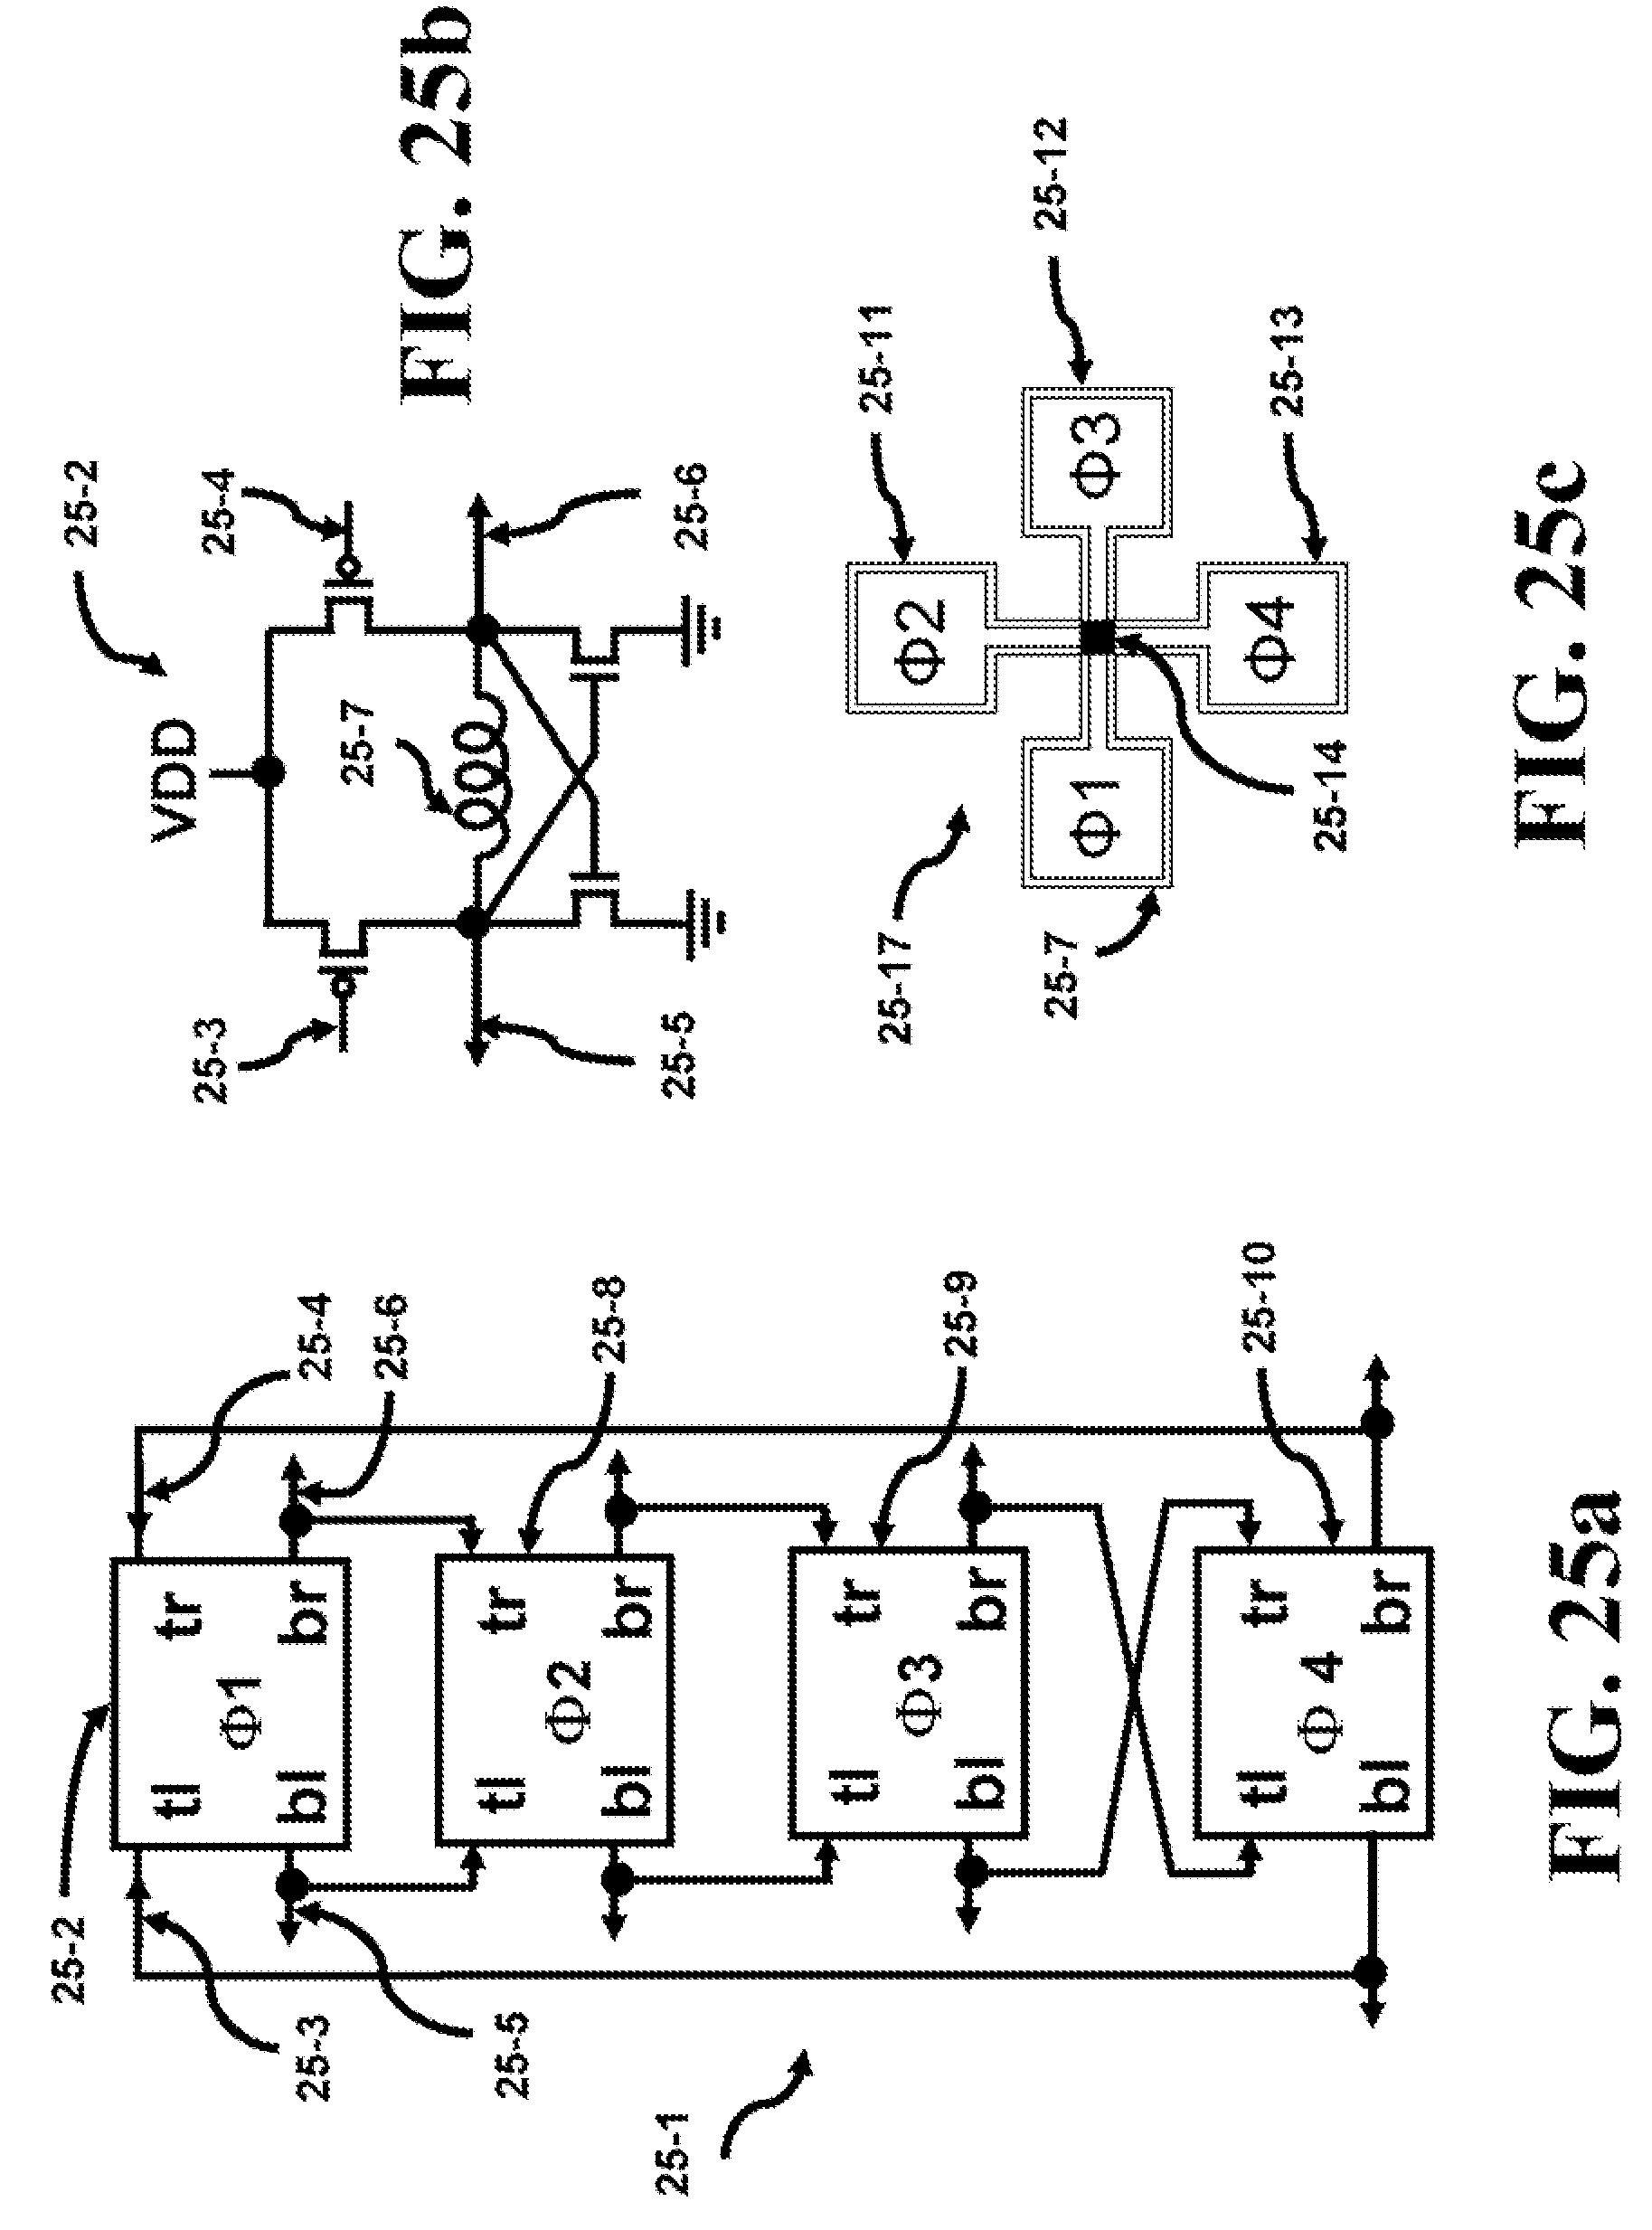 patent us7501903 frequency adjustment techniques in coupled lc RLC Circuit patent drawing